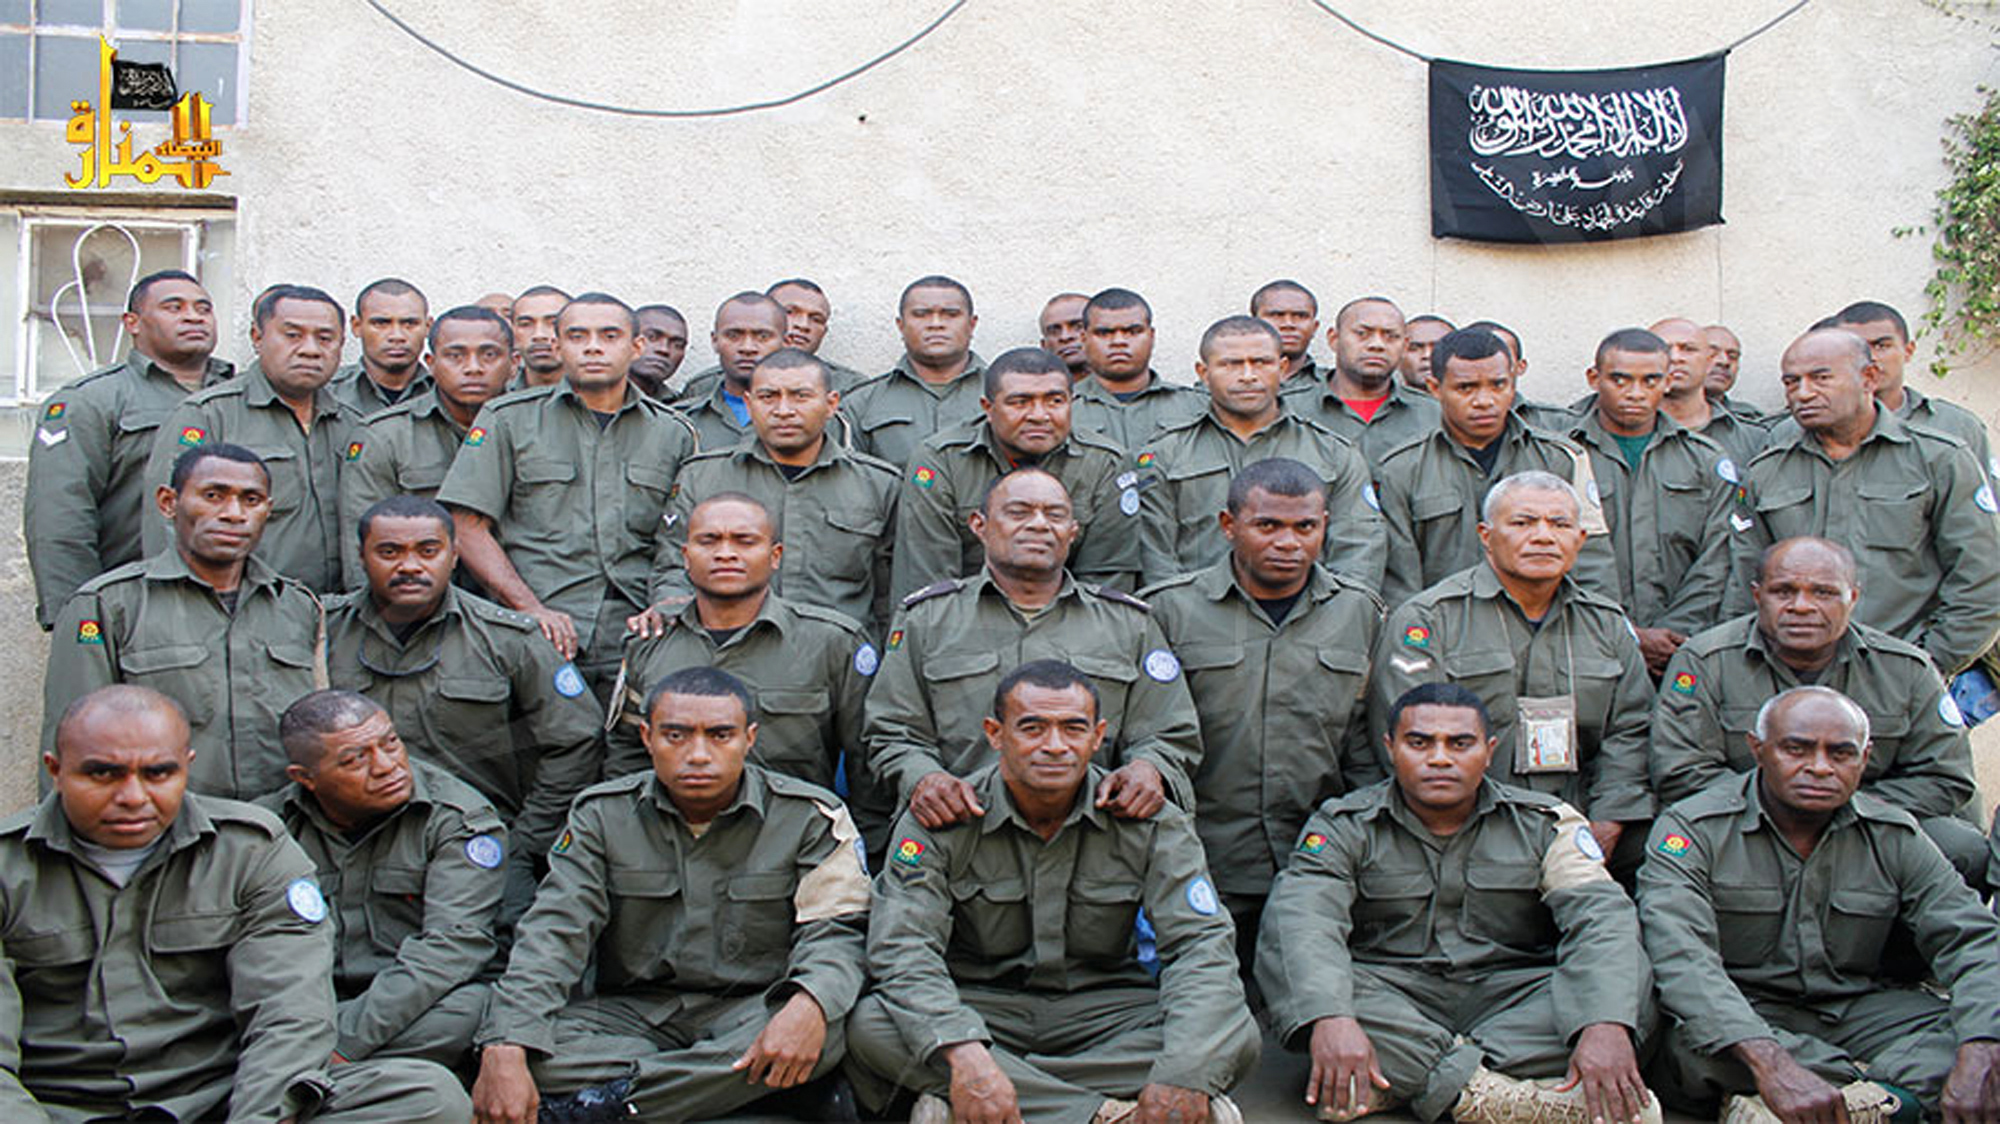 Undated photograph released by Hanin Network, a militant website, shows Fijian UN peacekeepers who were seized by The Nusra Front on Aug. 28, 2014, in the Golan Heights.